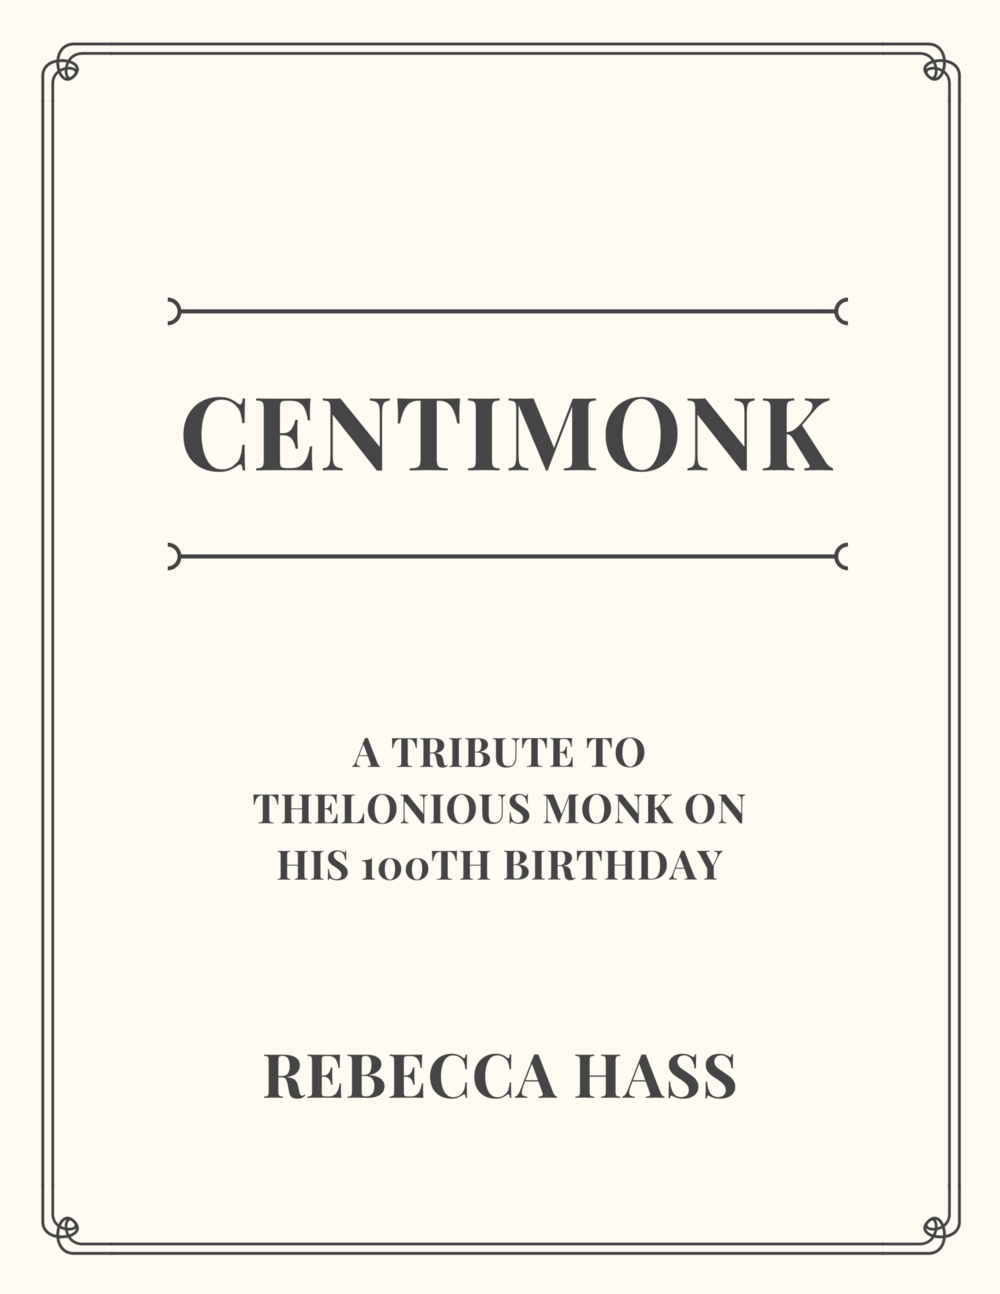 Centimonk title page.png